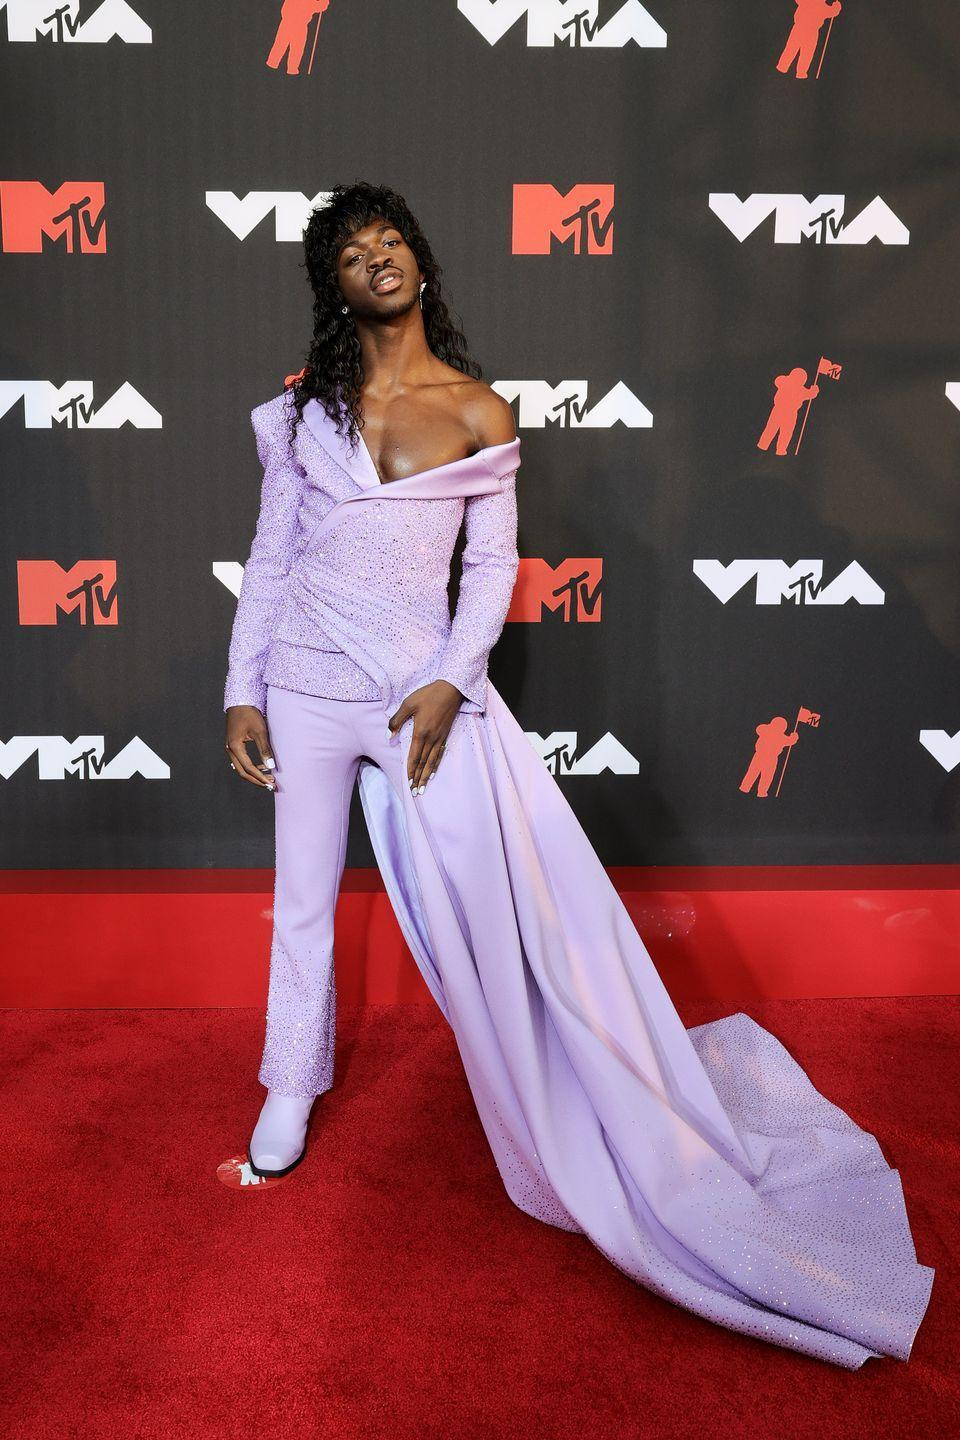 <p>Lis Nas X made a memorable entrance on the carpet in a lavender two-piece set with an off-the-shoulder top and statement train. He paired the look with a mullet hairstyle. </p>